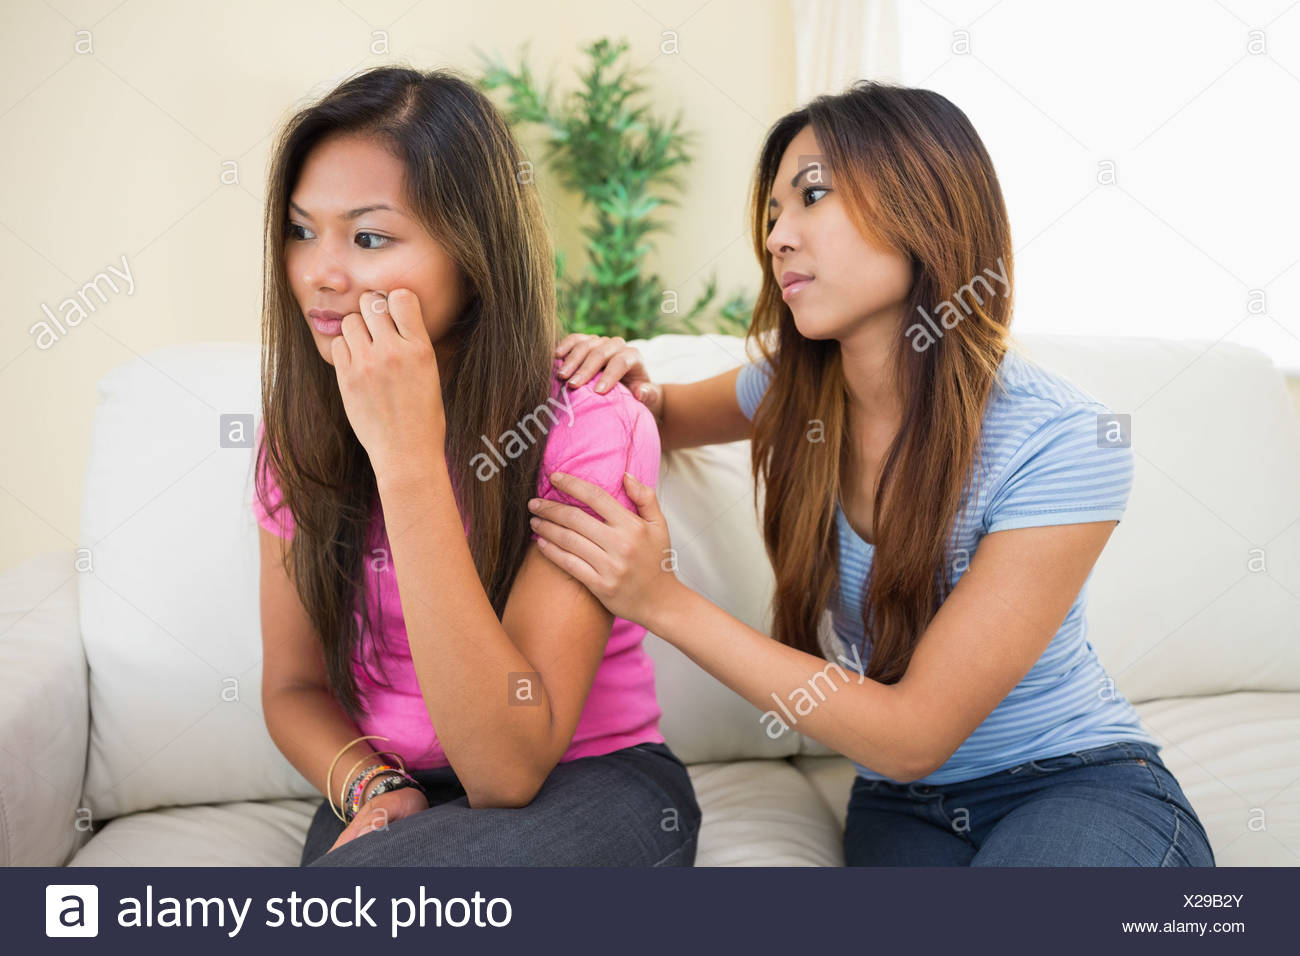 Upset woman sitting on a couch being consoled by her sister - Stock Image